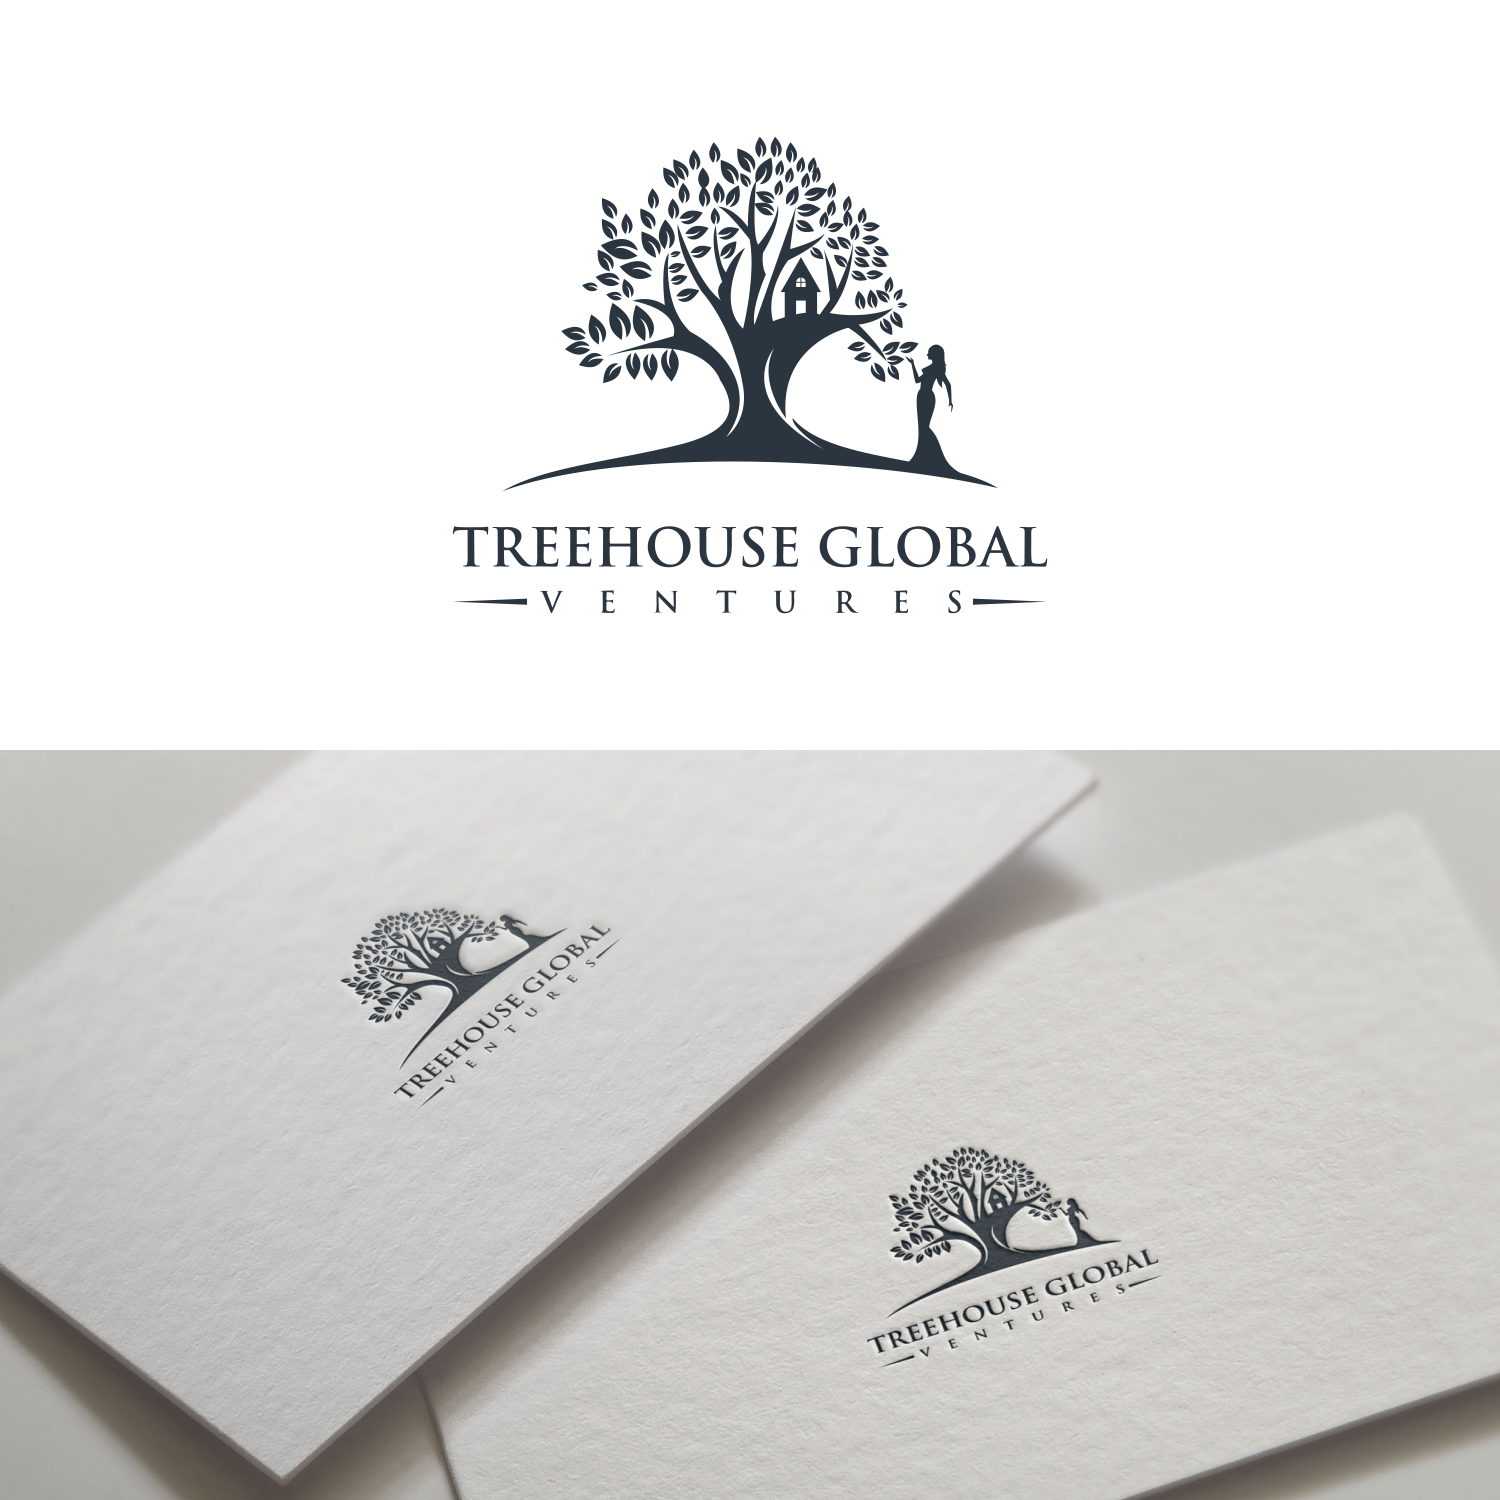 Logo Design for a Treehouse Global Ventures by agng_ds